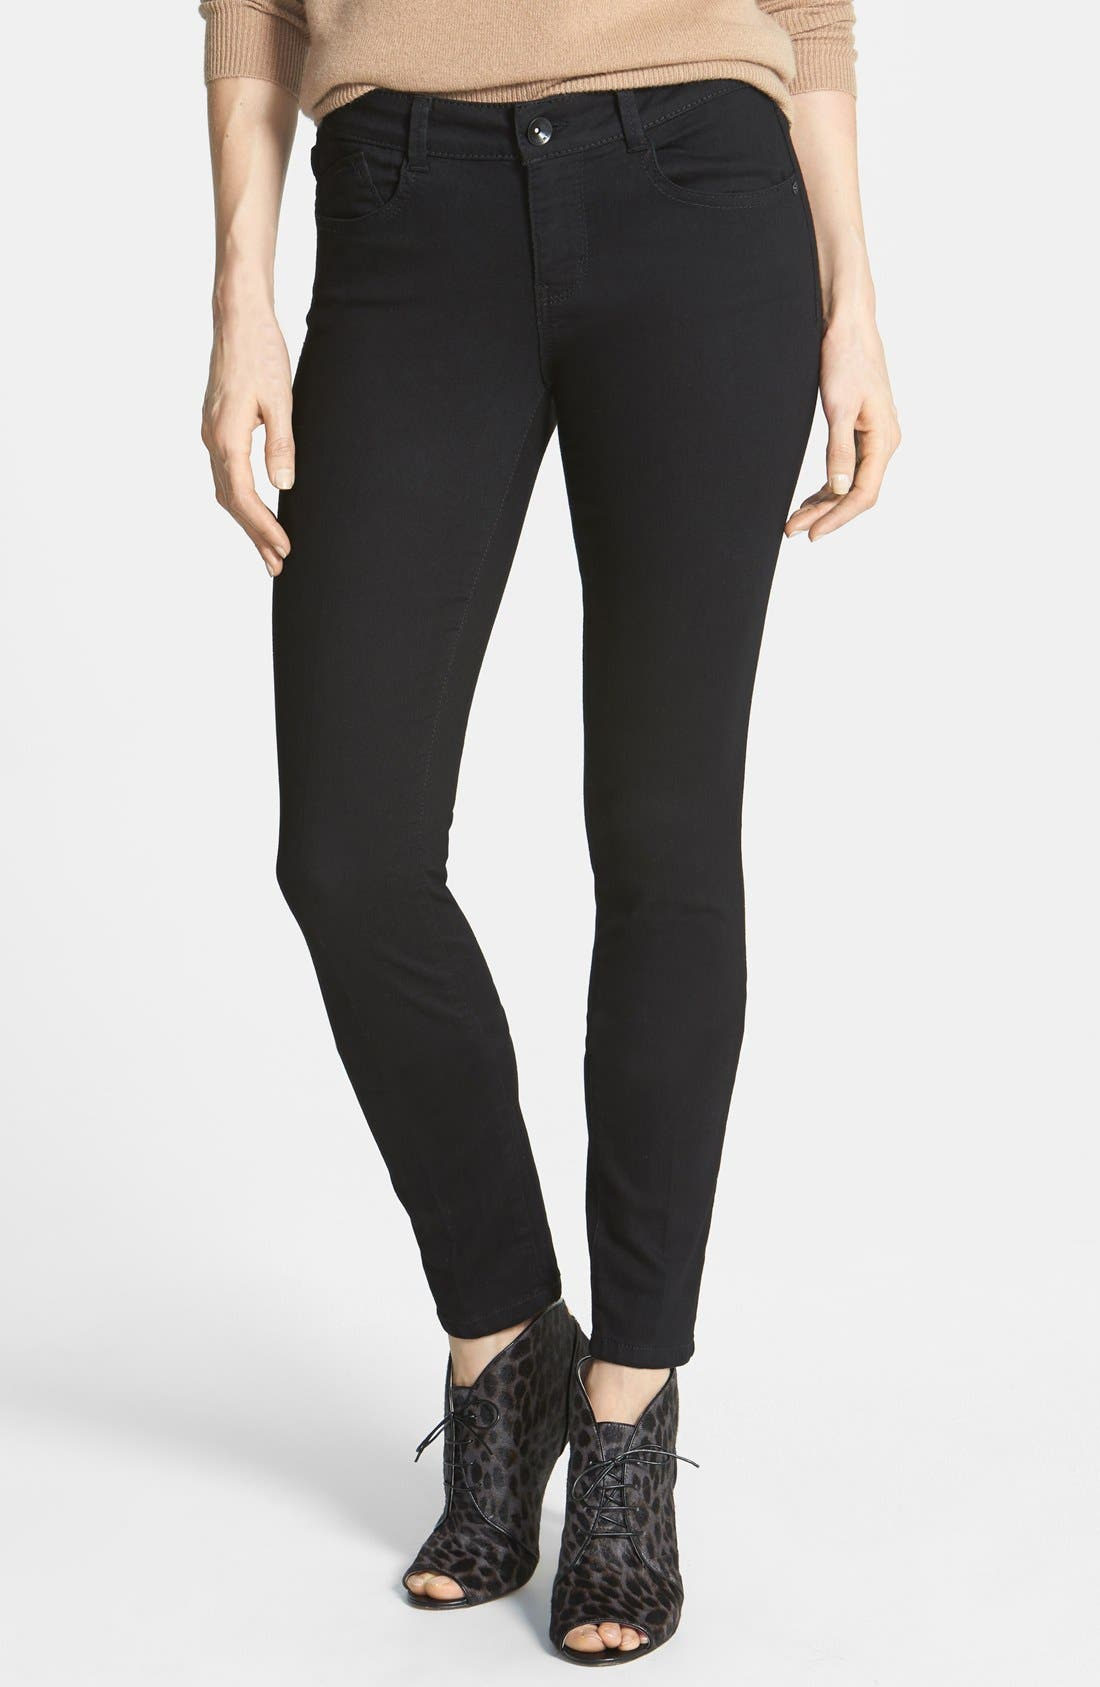 Main Image - Wit & Wisdom Lightweight Stretch Skinny Jeans (Black) (Nordstrom Exclusive)